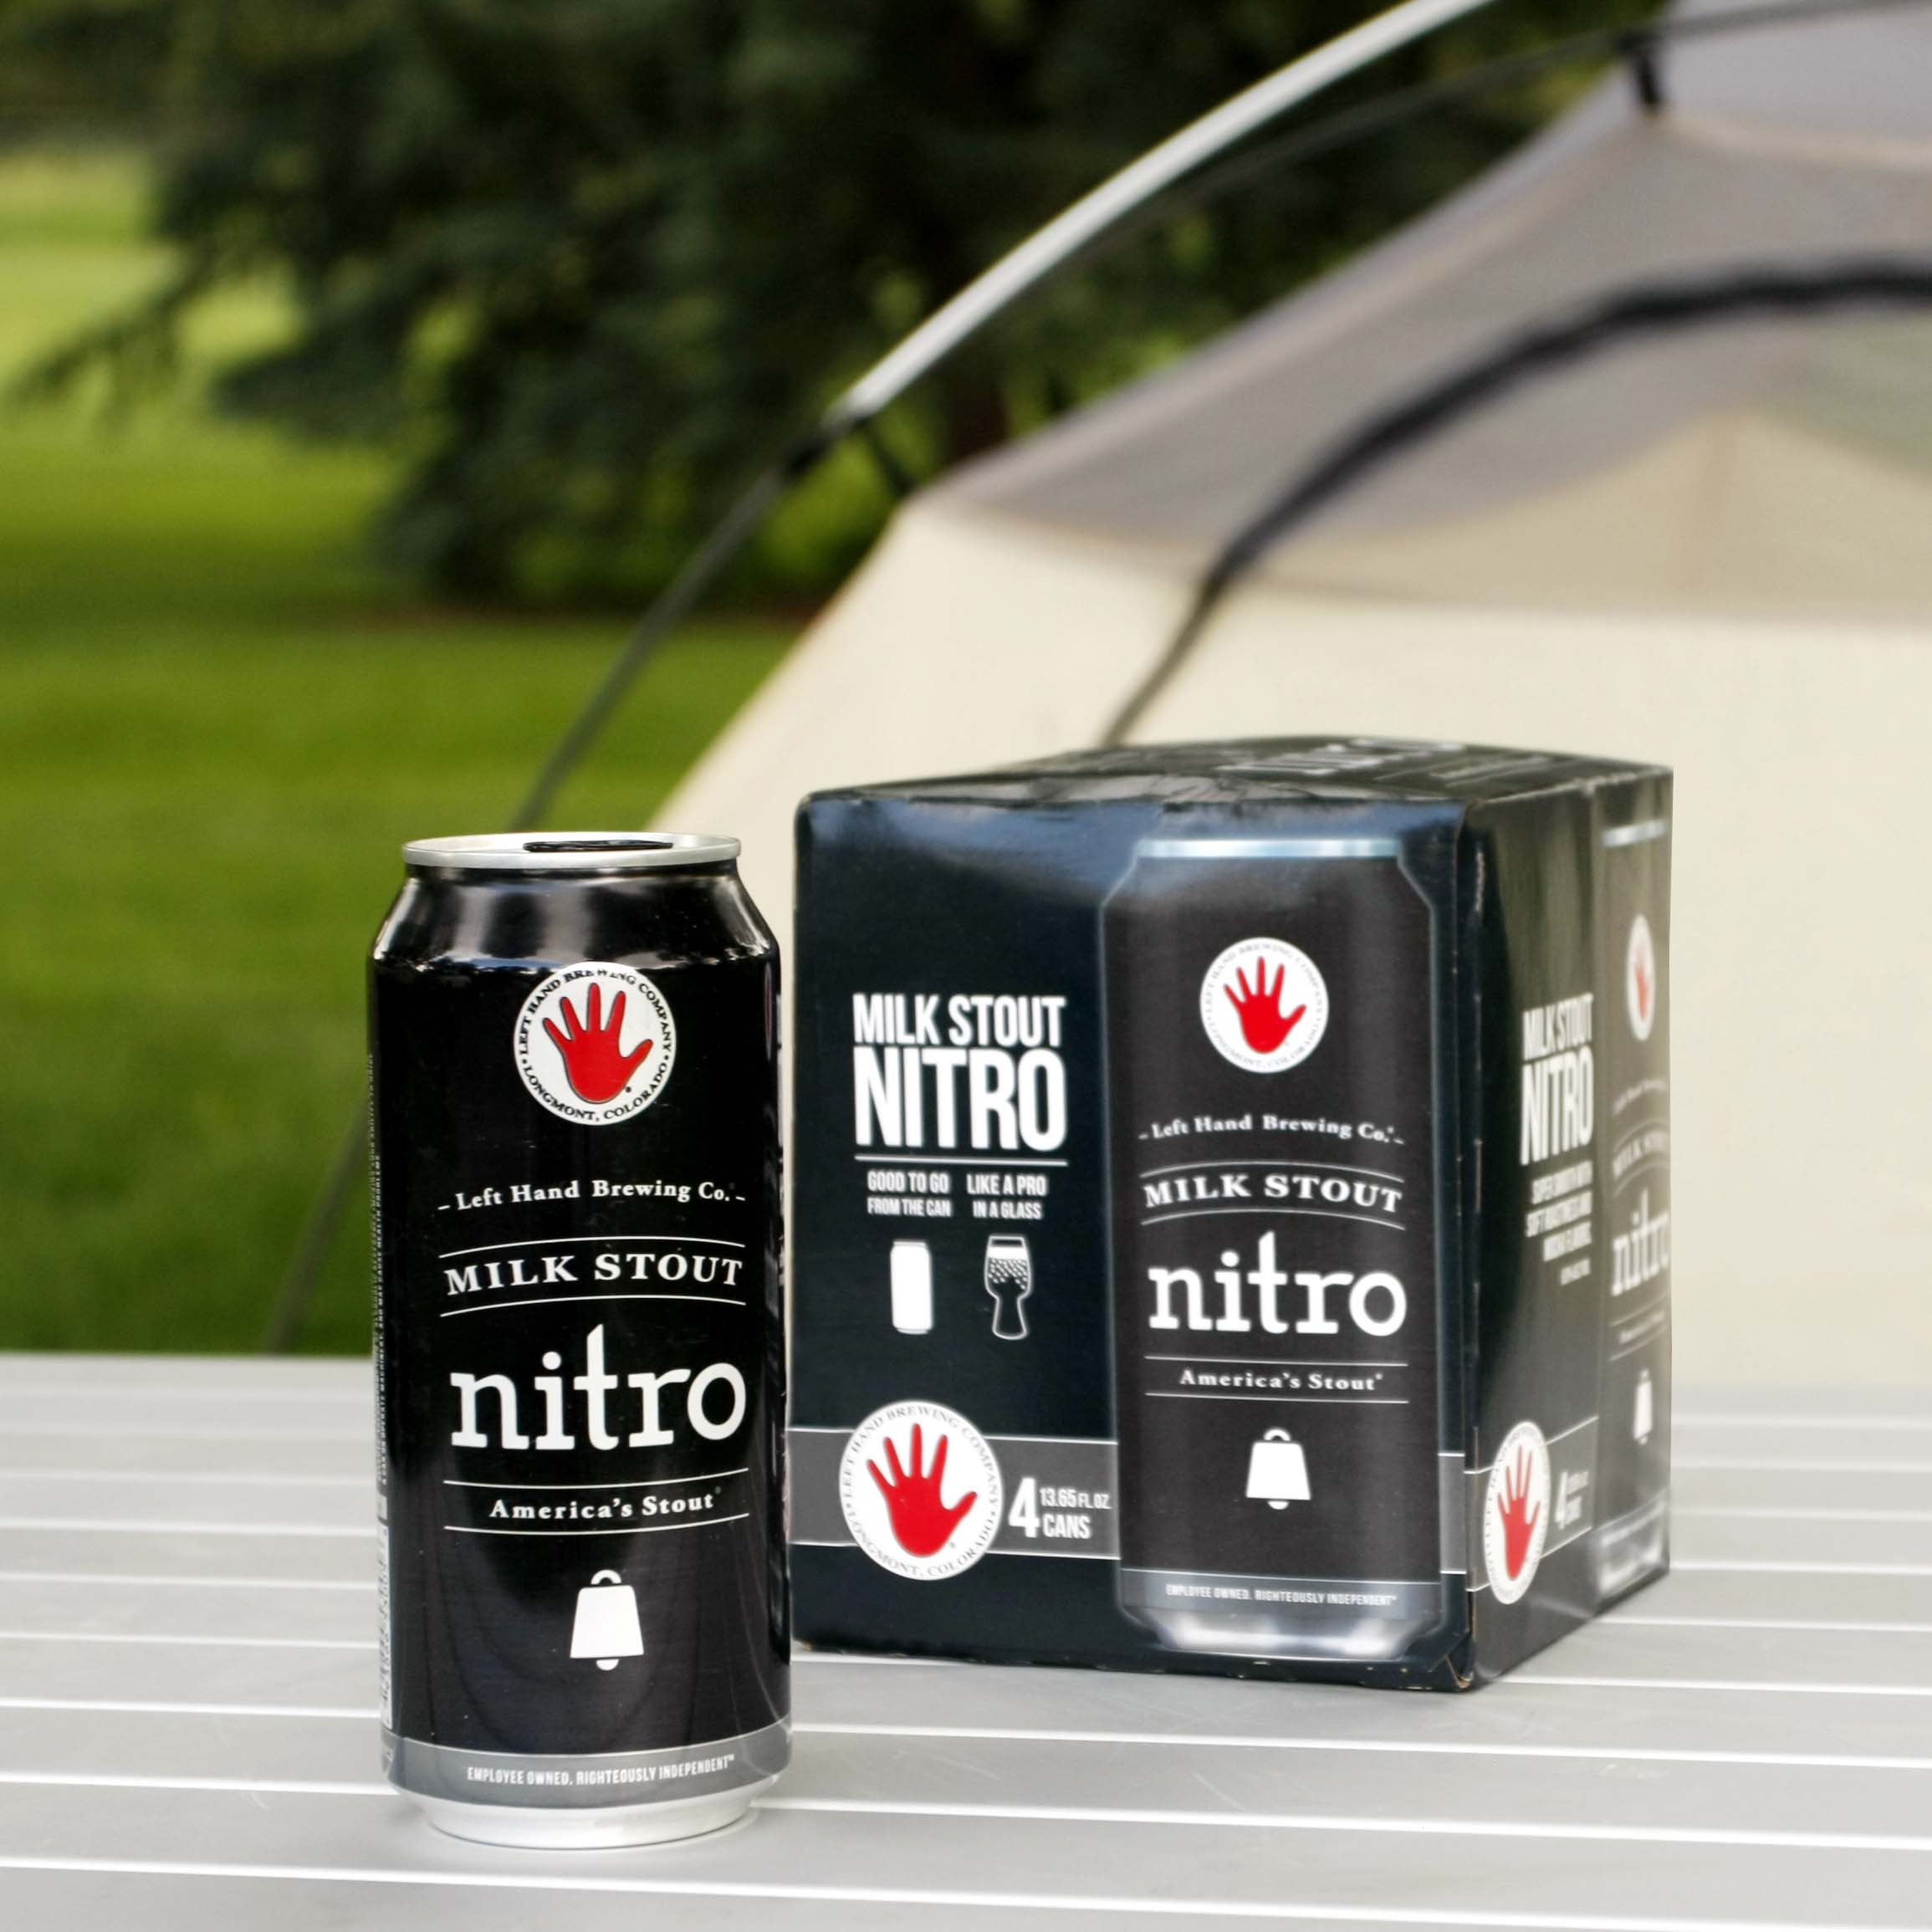 Left Hand Brewing Milk Stout Nitro Cans with Widget Inside Technology